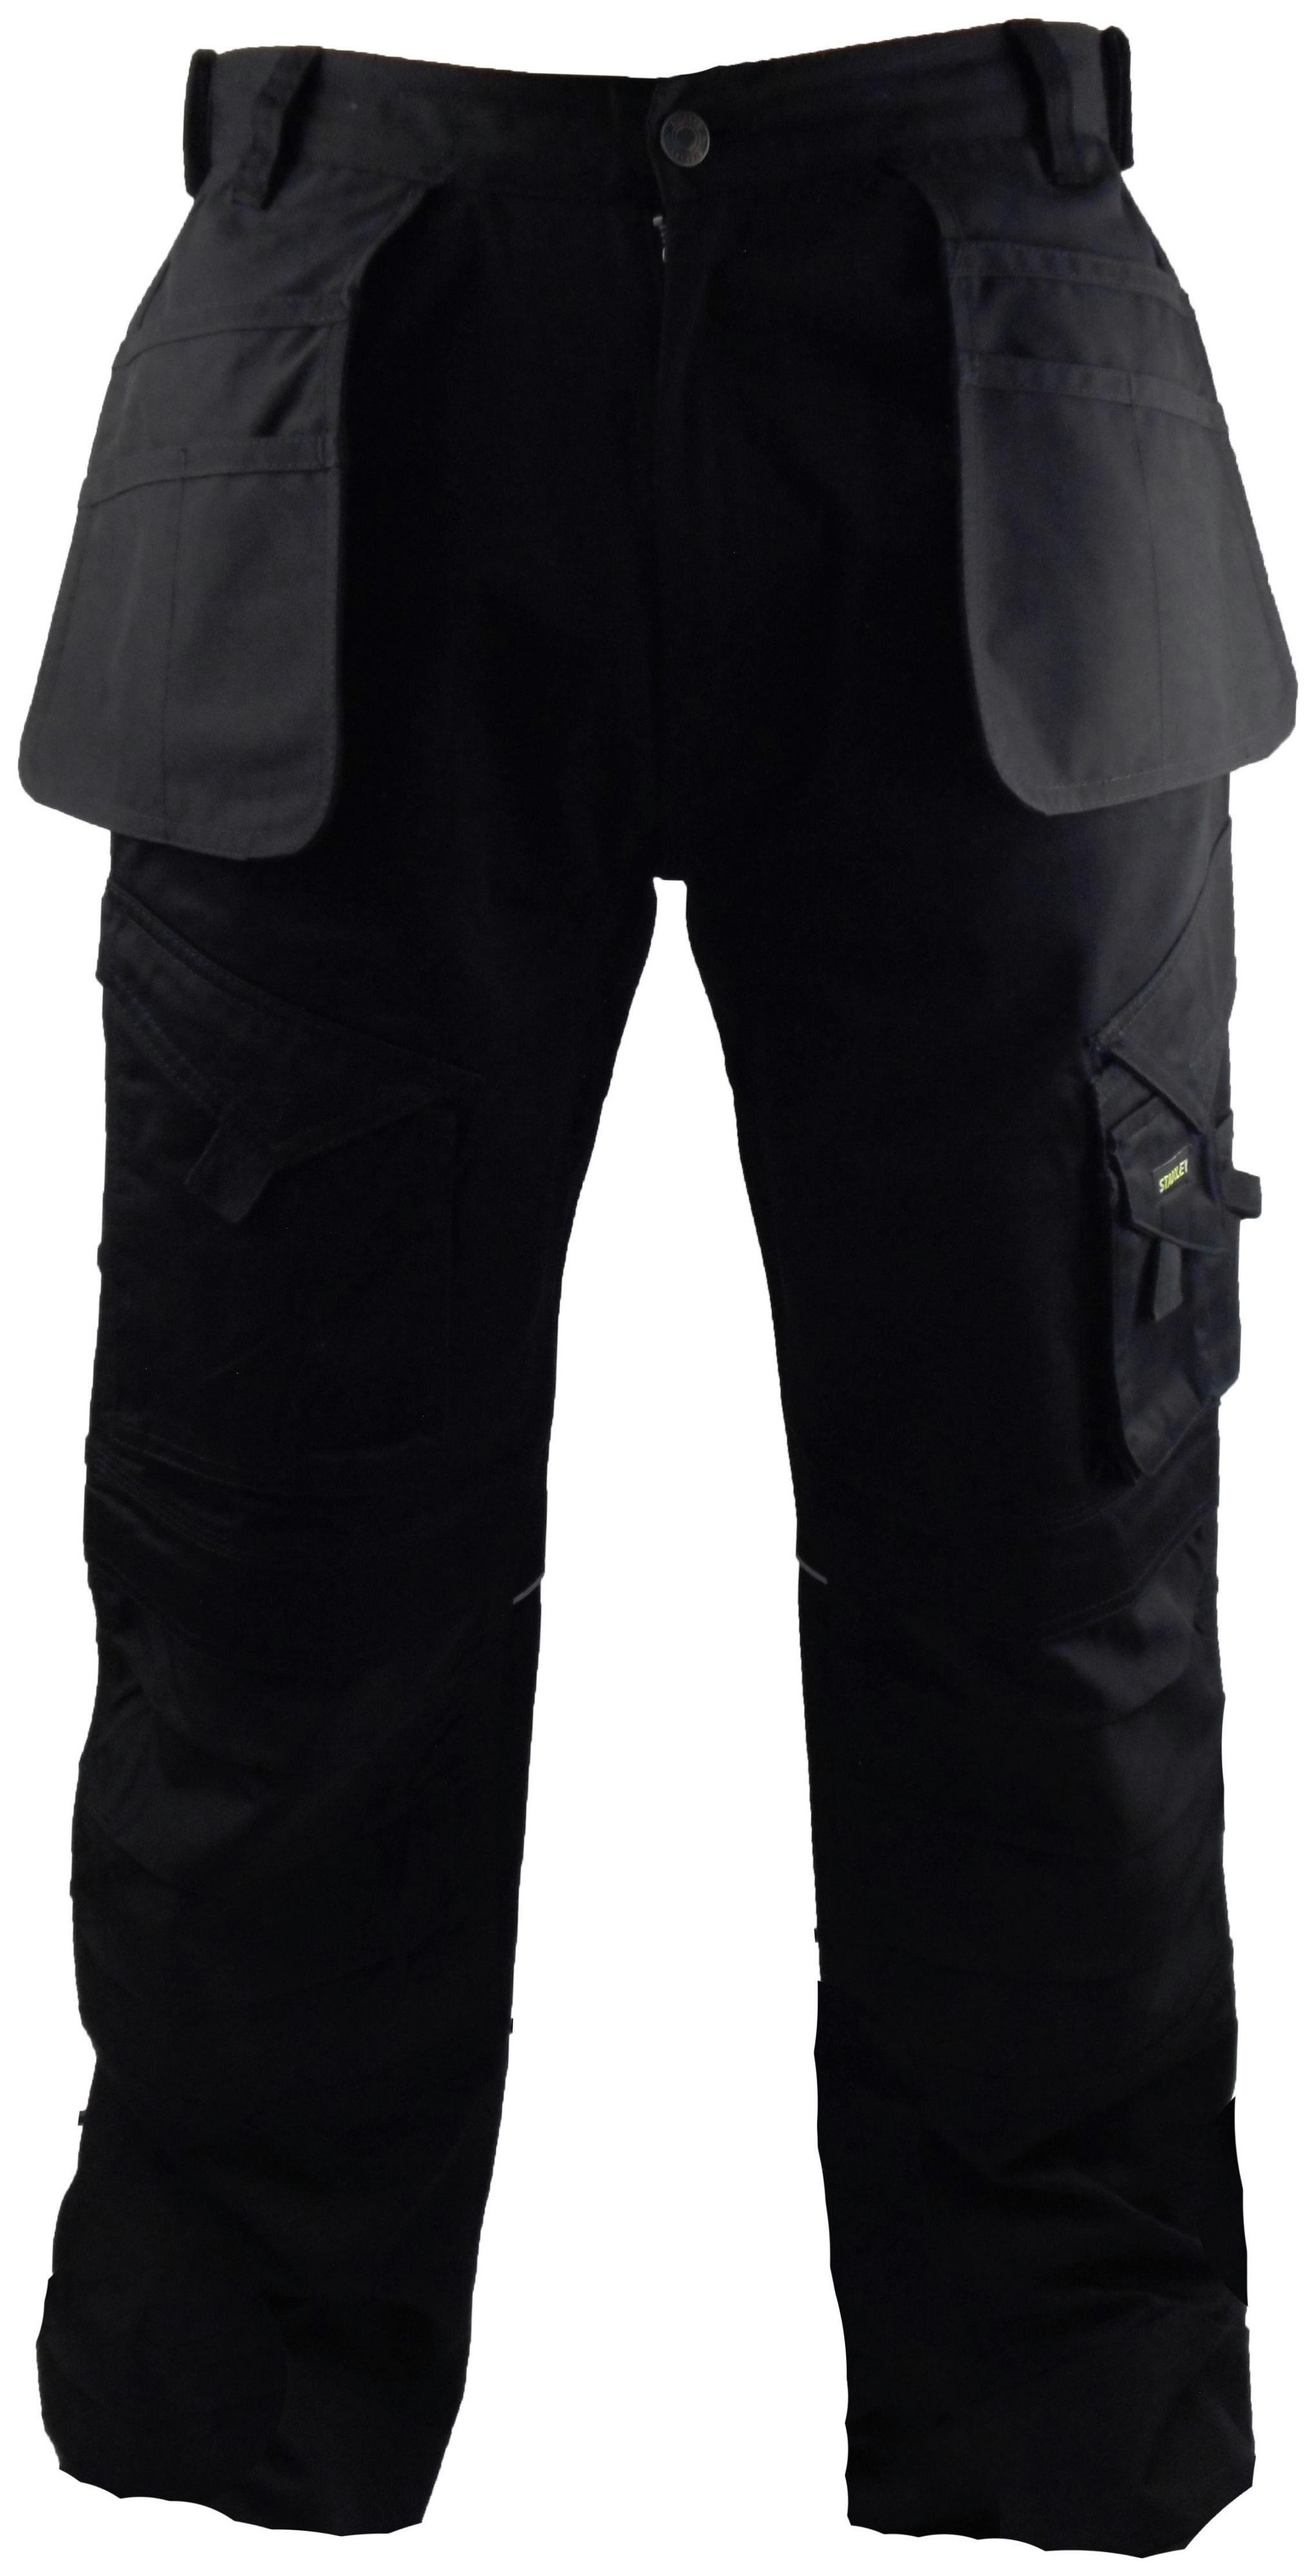 Image of Stanley Colorado Men's Black Trouser - 33 to 34 inch.